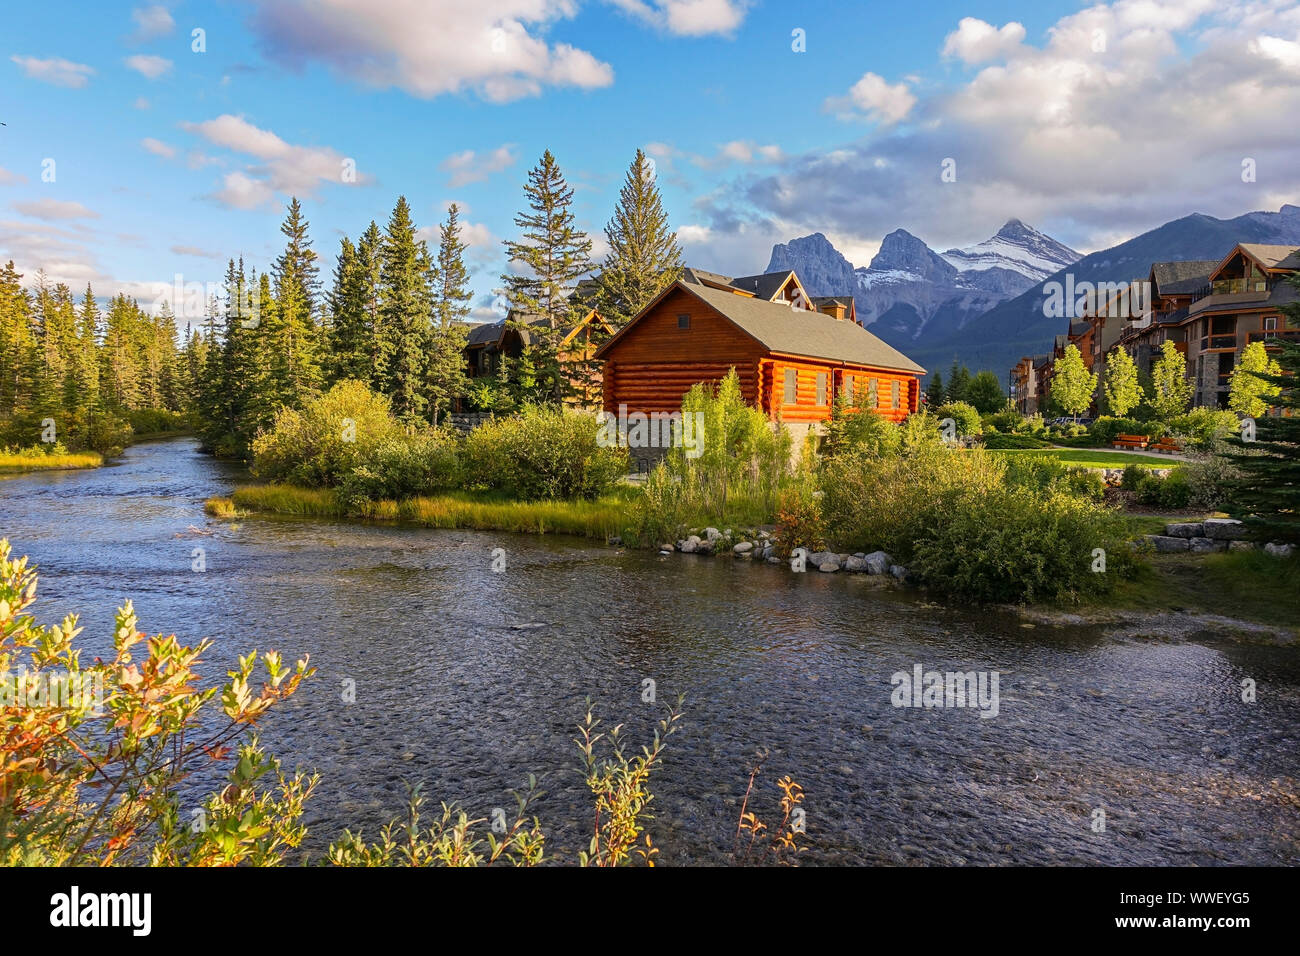 Spring Creek Alpine Village Landscape and Autumn Colors with Distant Three Sisters Mountain in Town of Canmore, Alberta Foothills of Canadian Rockies Stock Photo